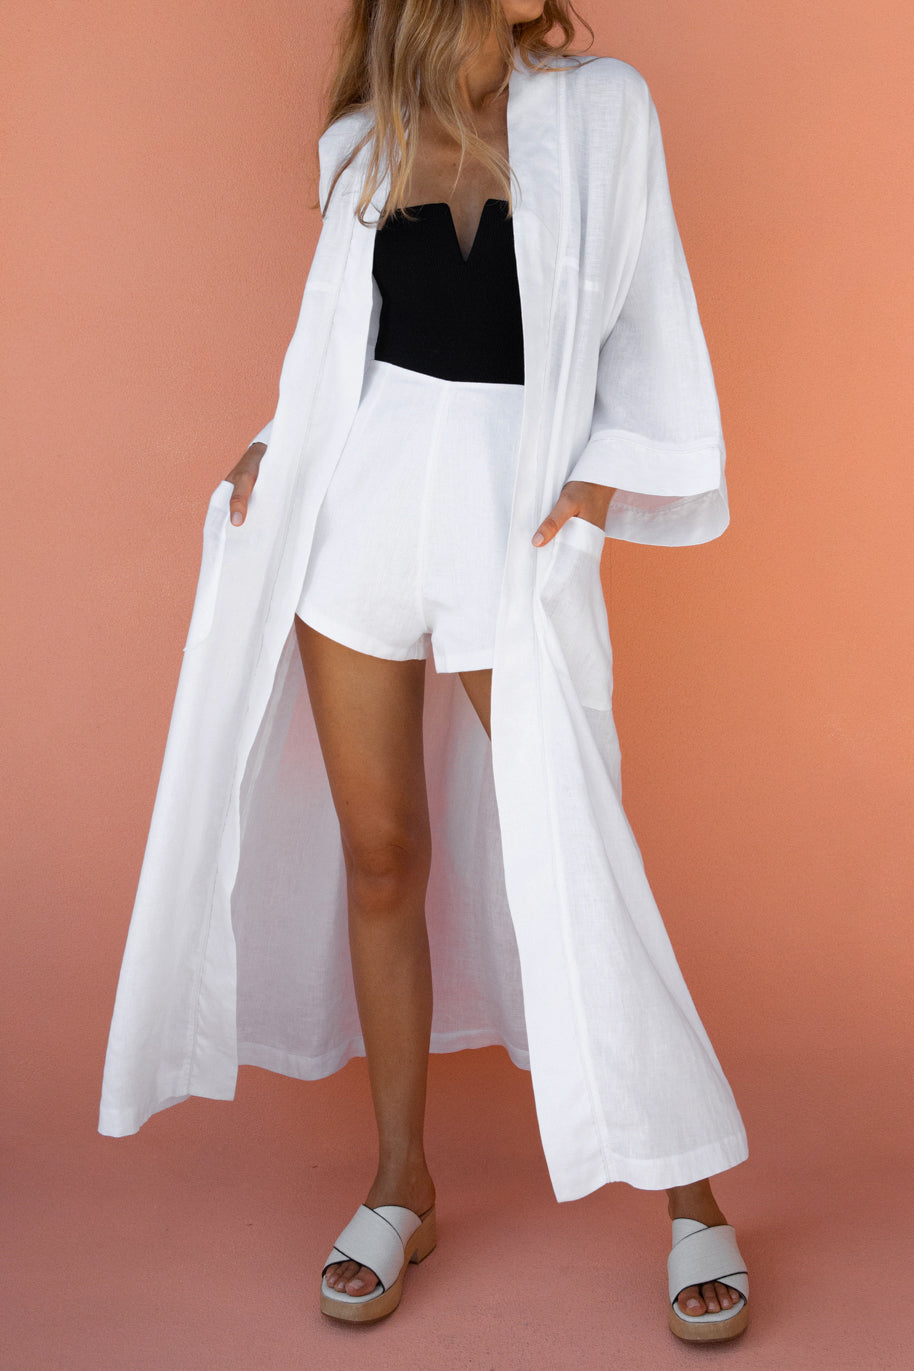 JEROME BEACH ROBE - WHITE